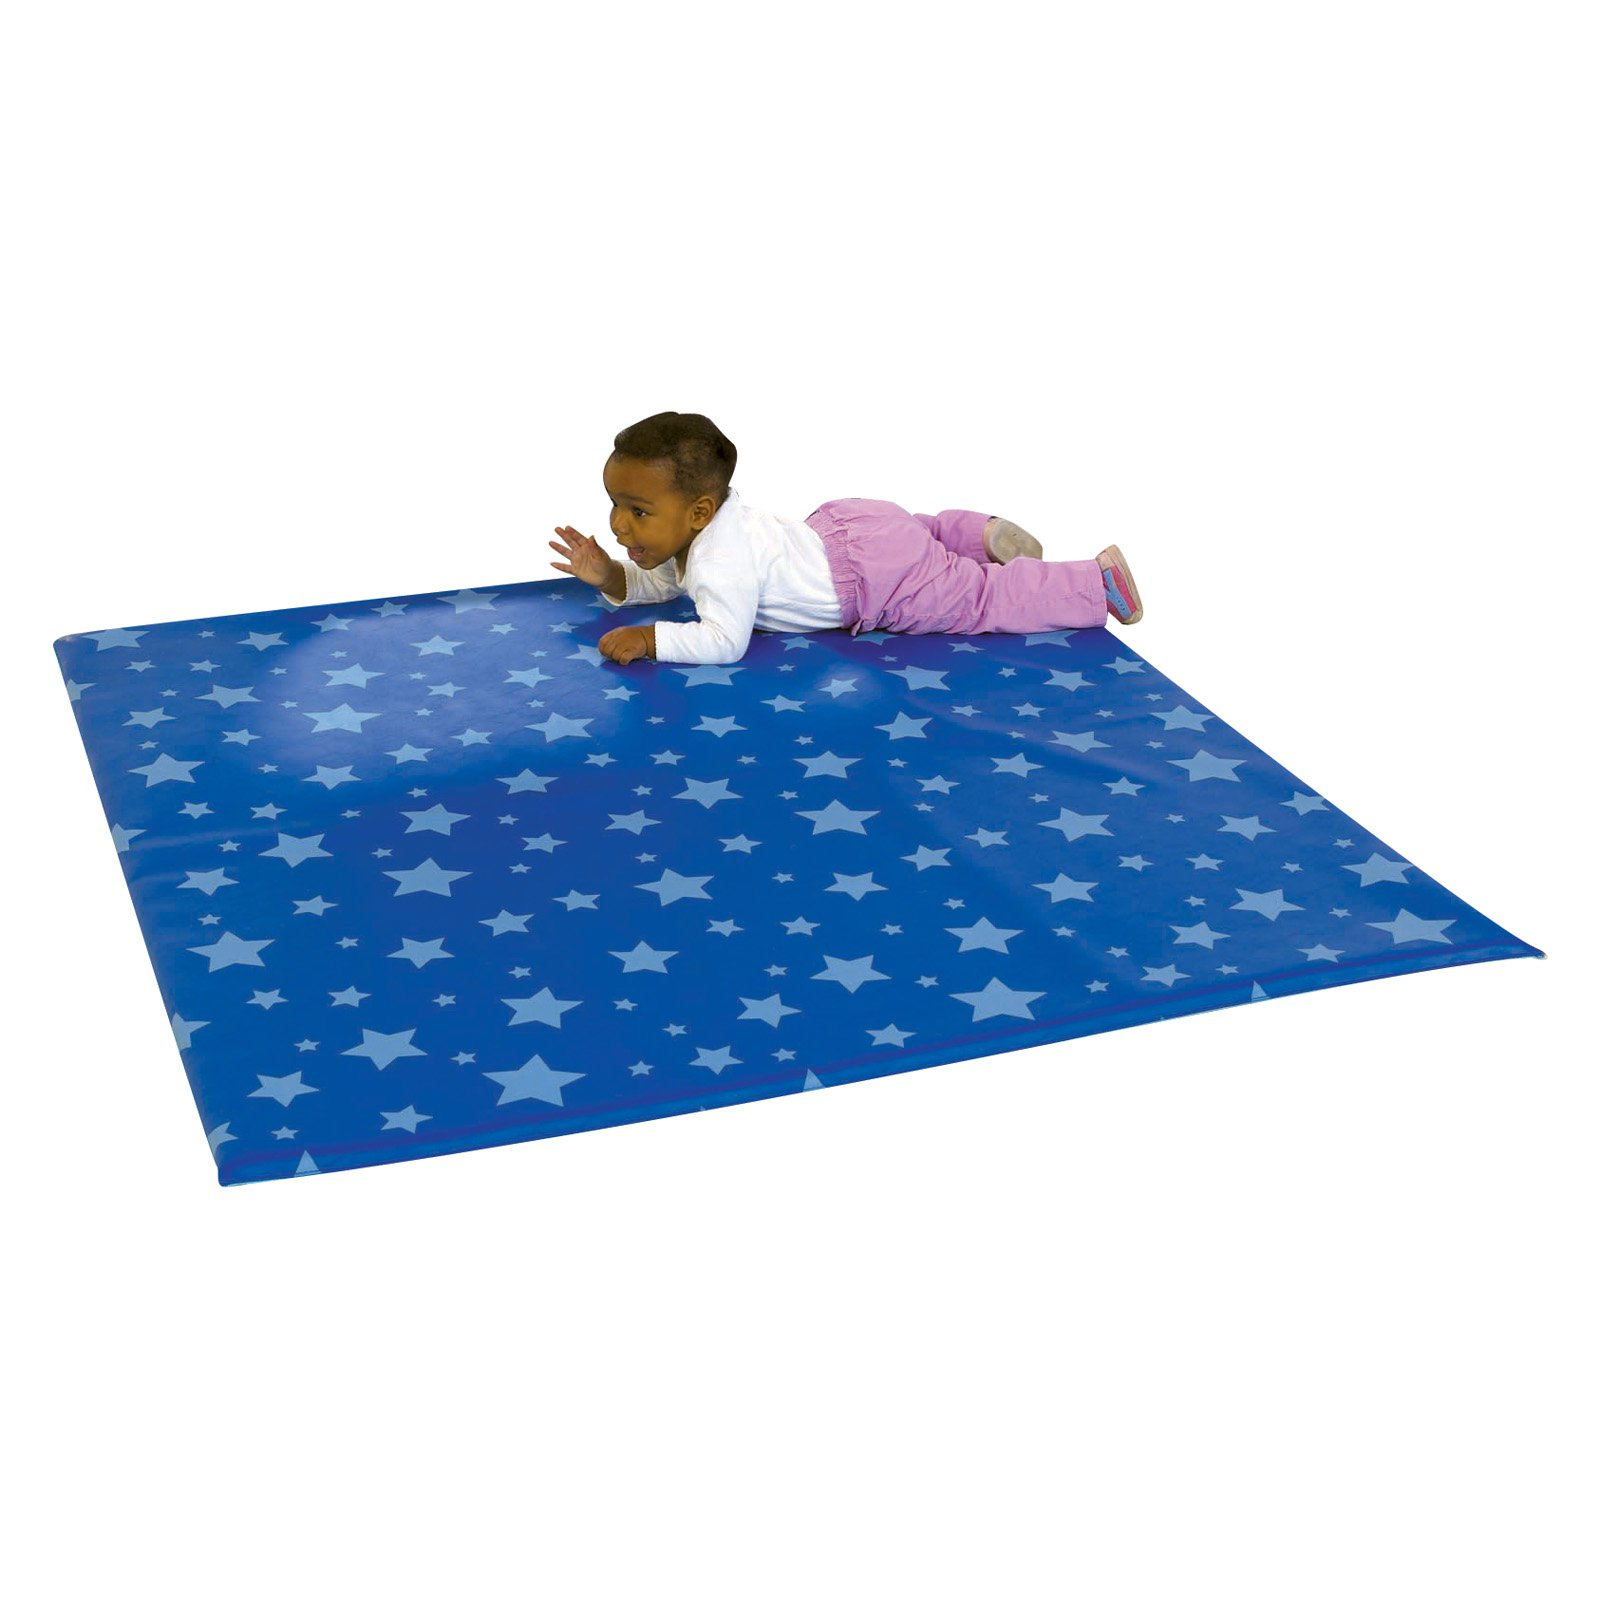 Children's Factory Starry Night Activity Mat by Children%27s Factory